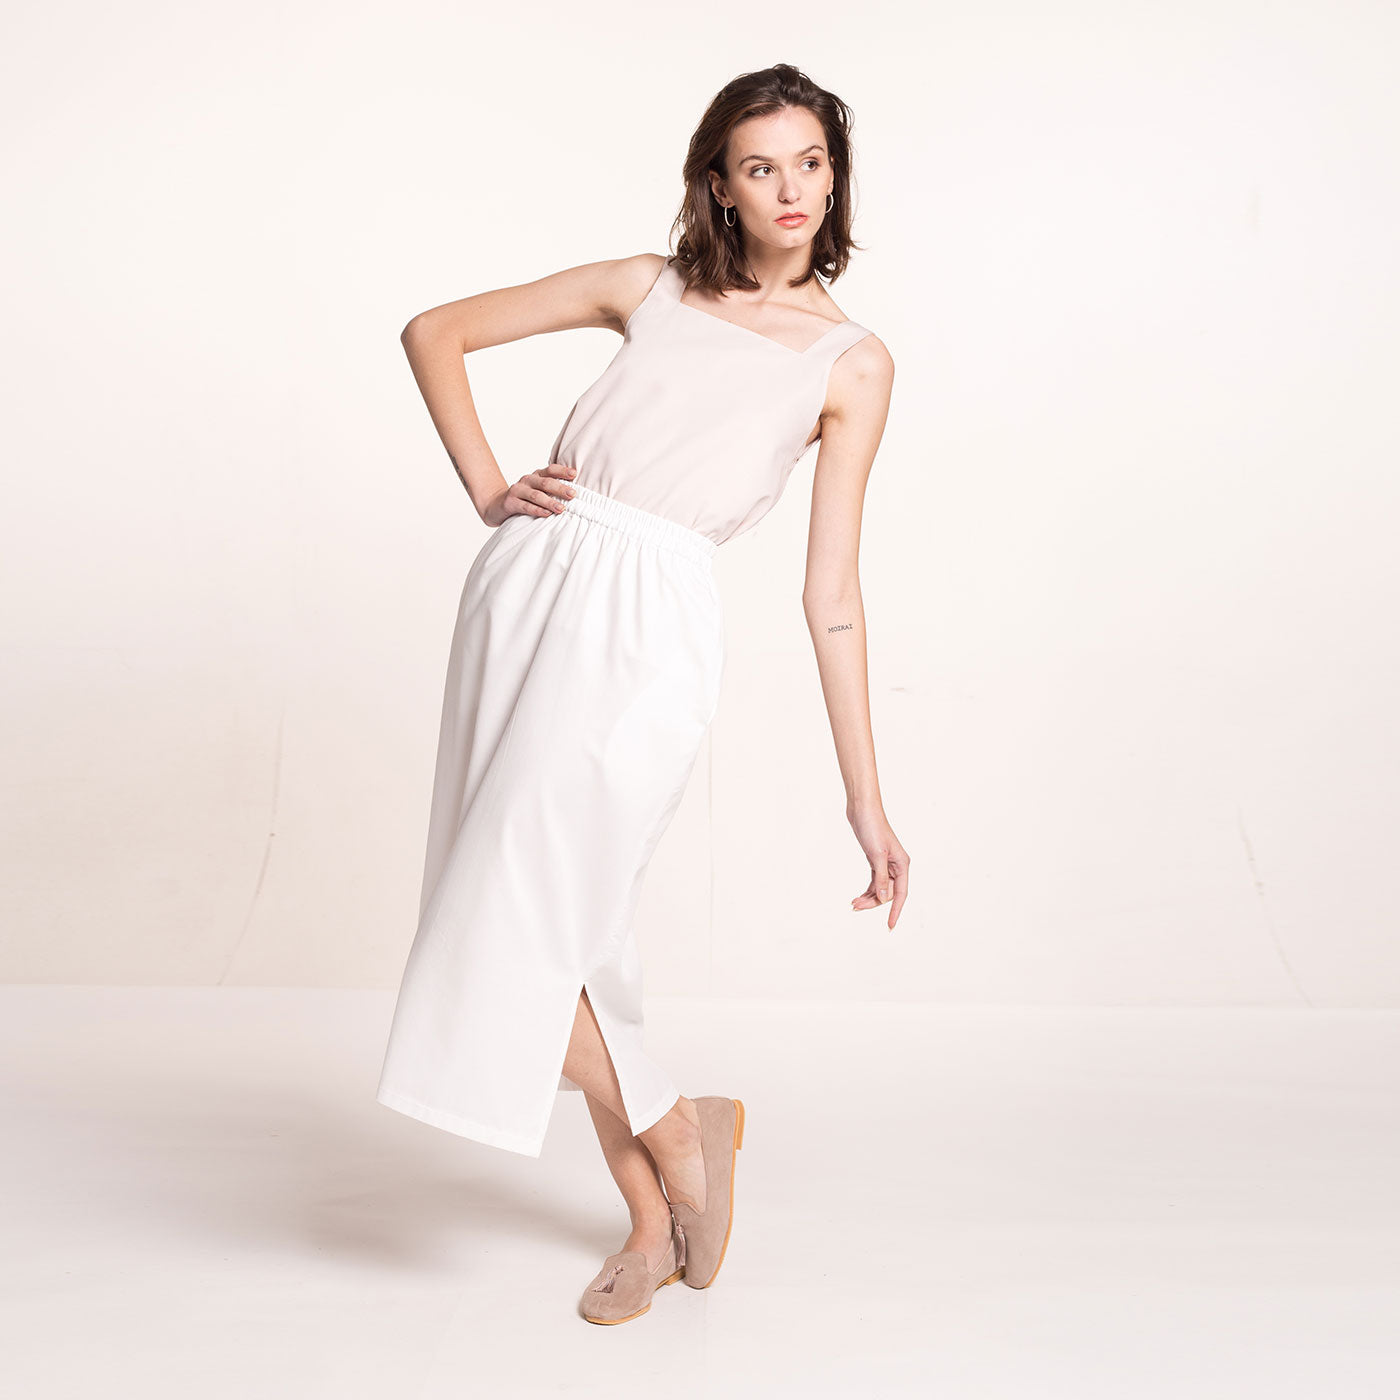 The model wears a rose-beige, sustainable, organic cotton, wide straps top.